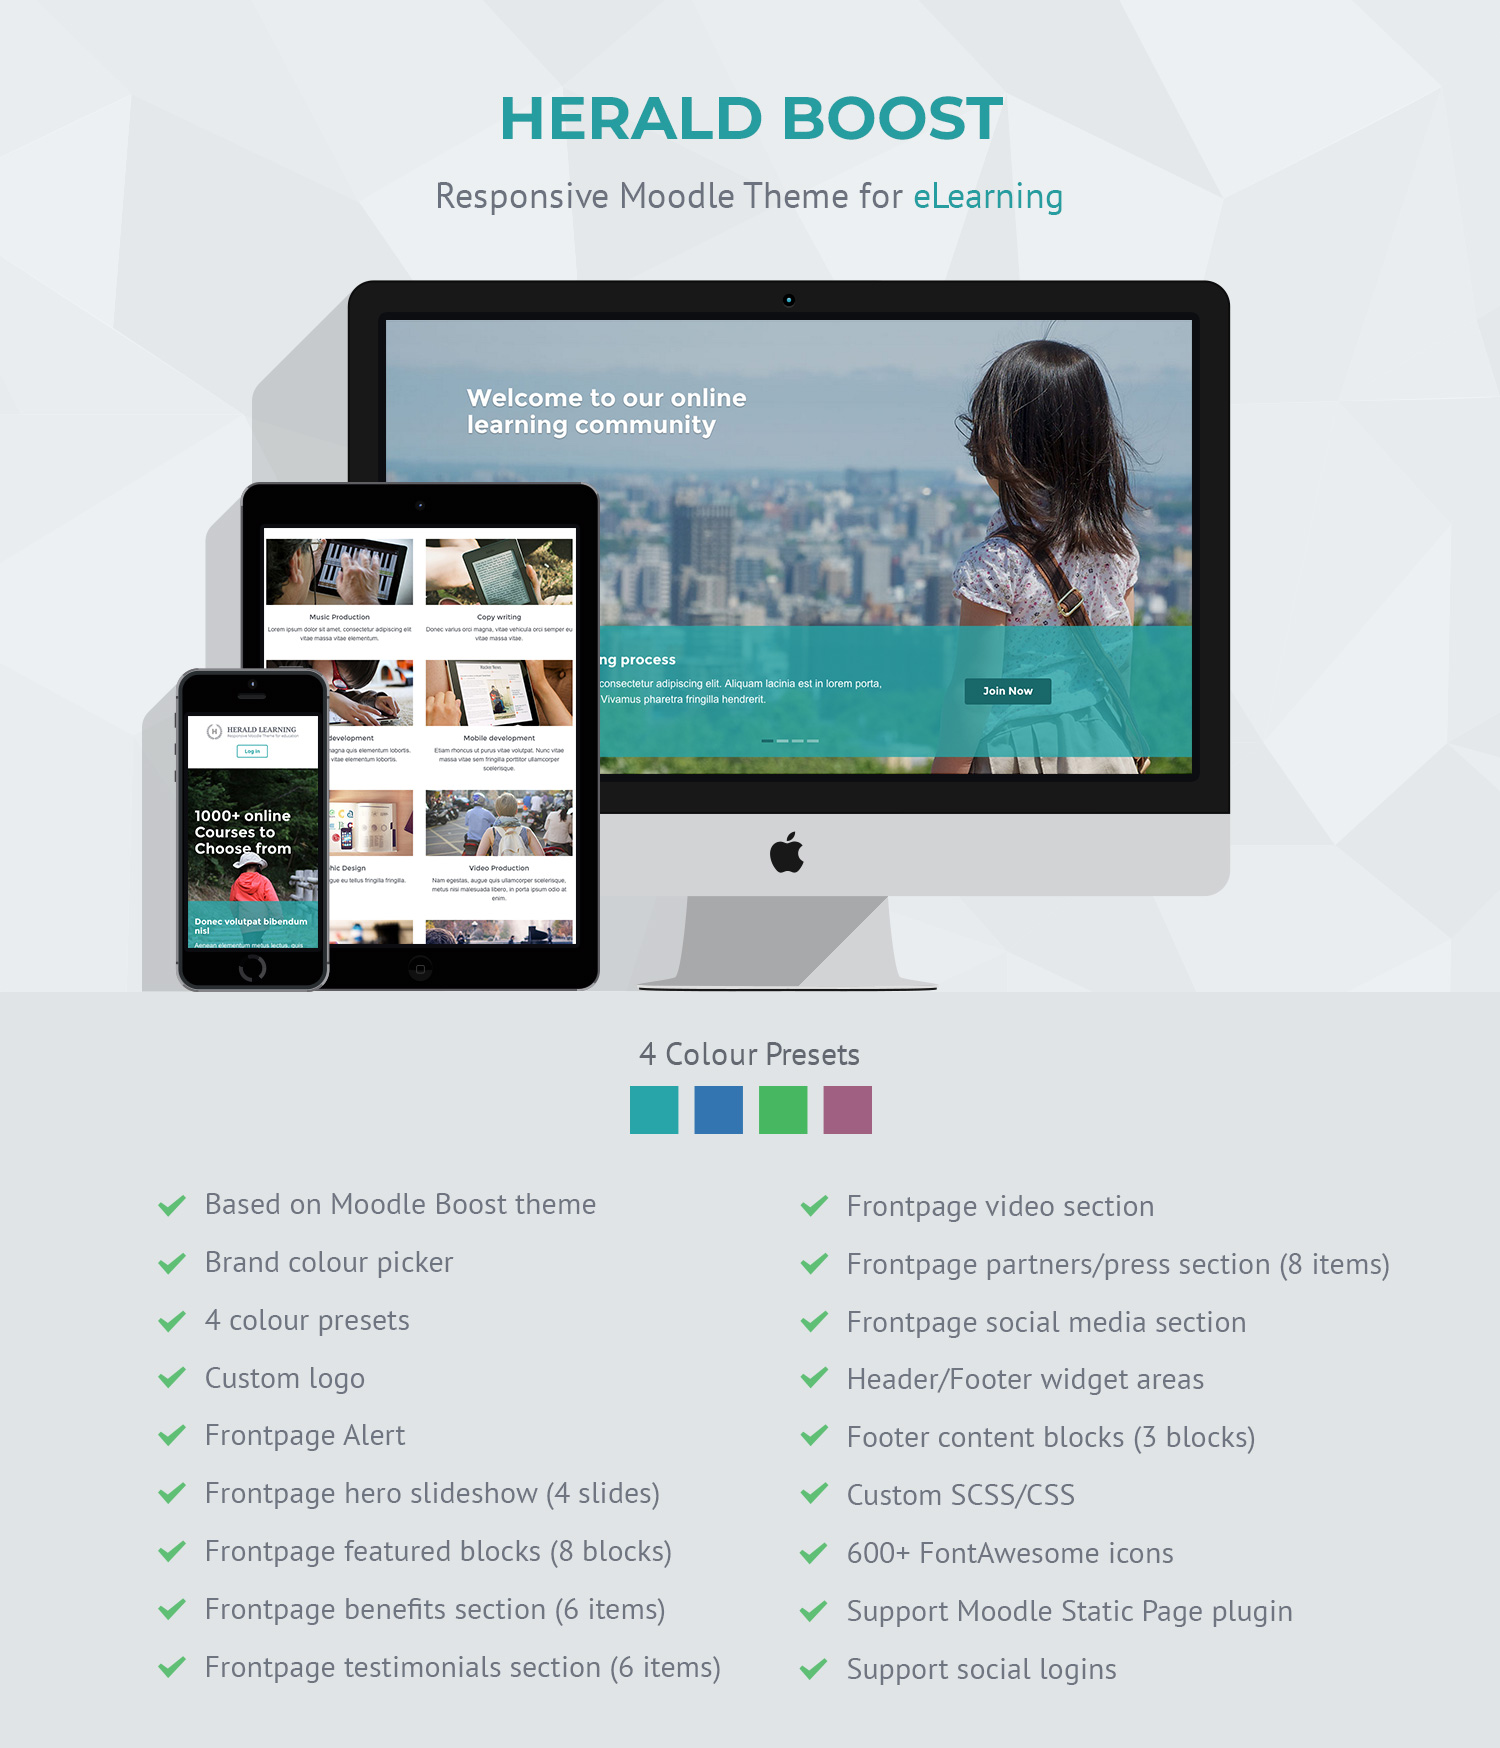 Responsive-Moodle-Theme-Herald-Boost-Promo-full